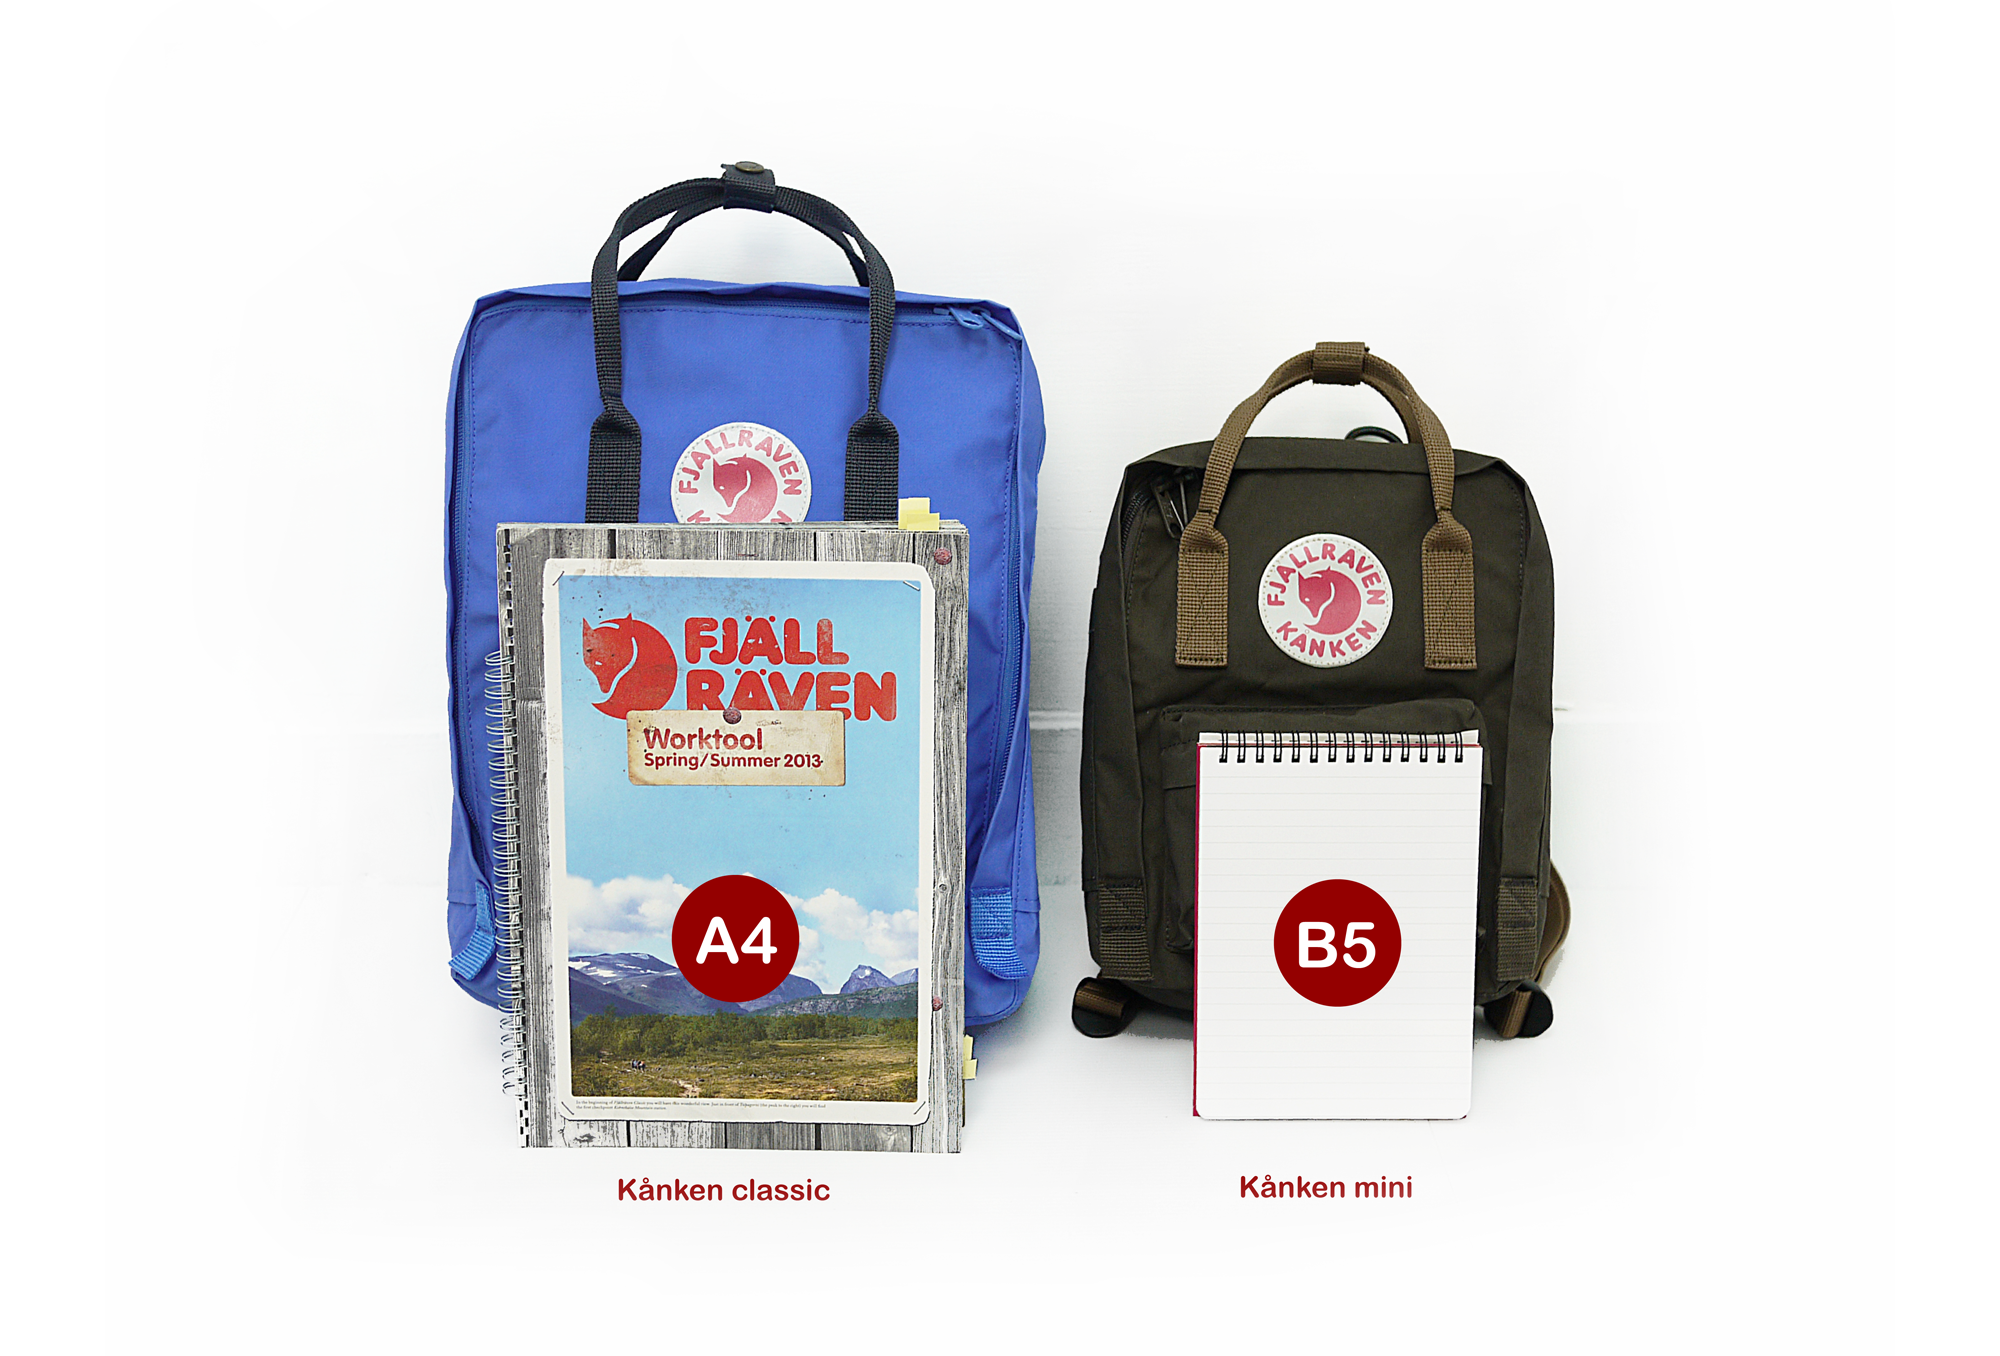 【Fjallraven Kanken 】K?nken Classic 550-326 Black & Ox Red 黑公牛紅 5